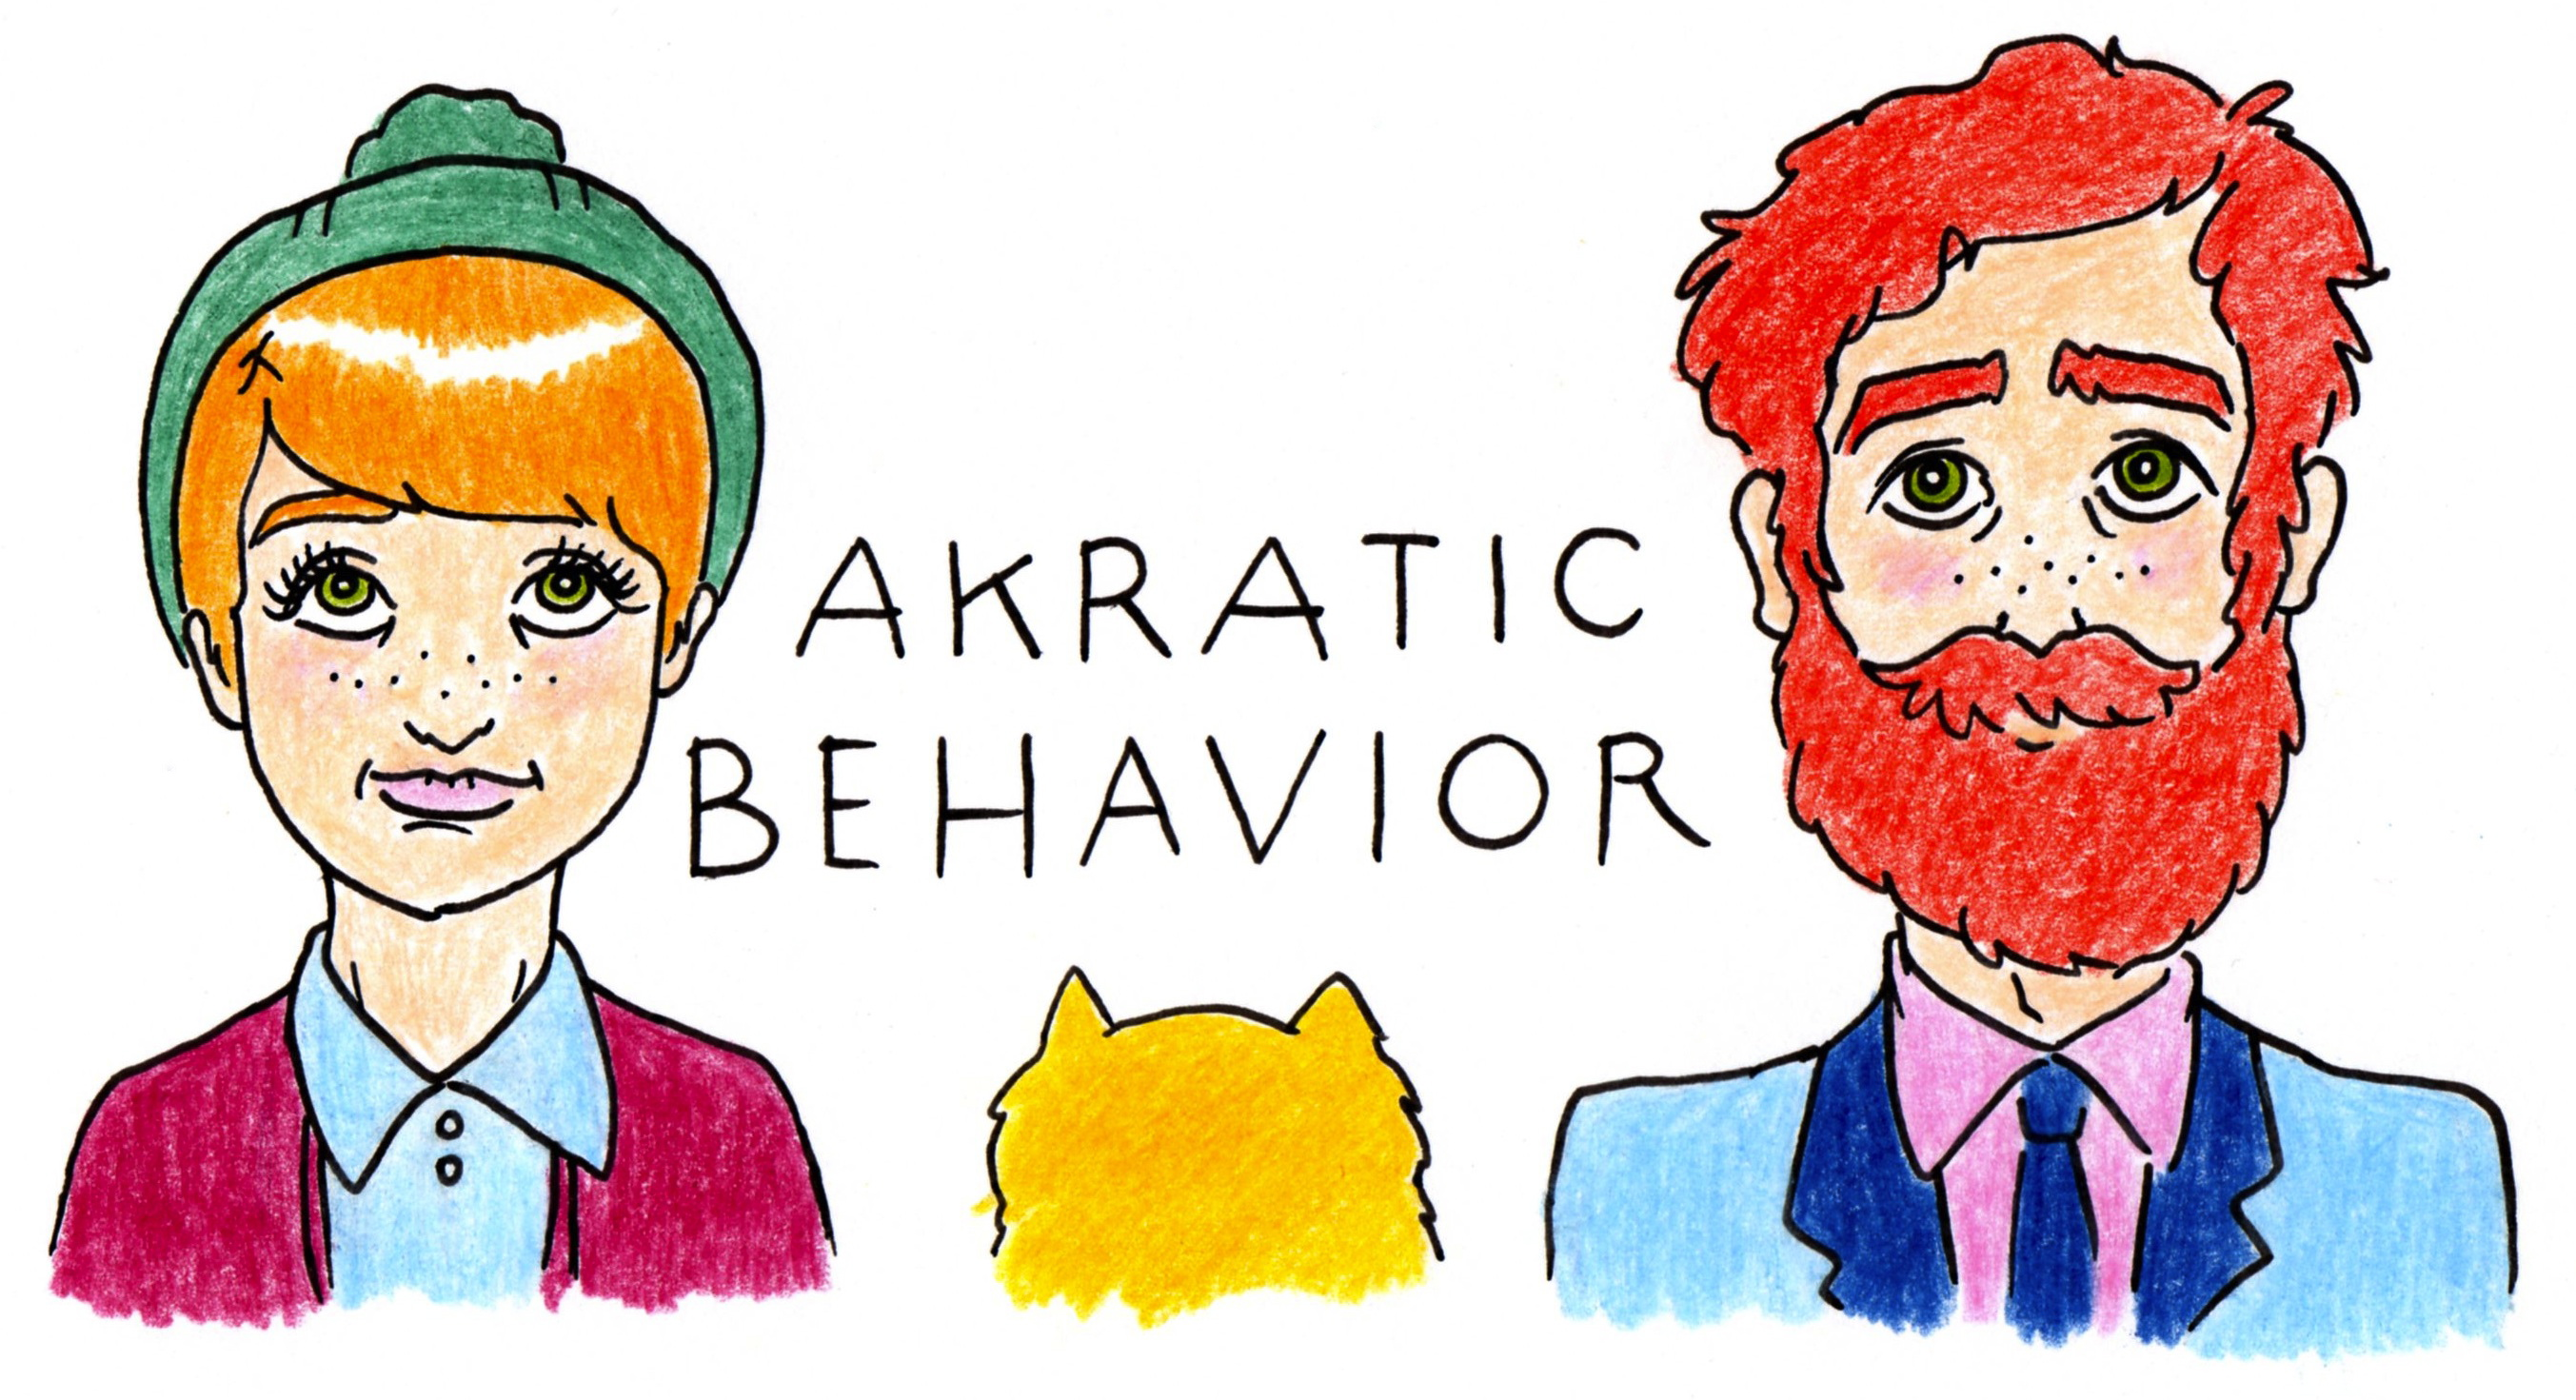 Akratic Behavior